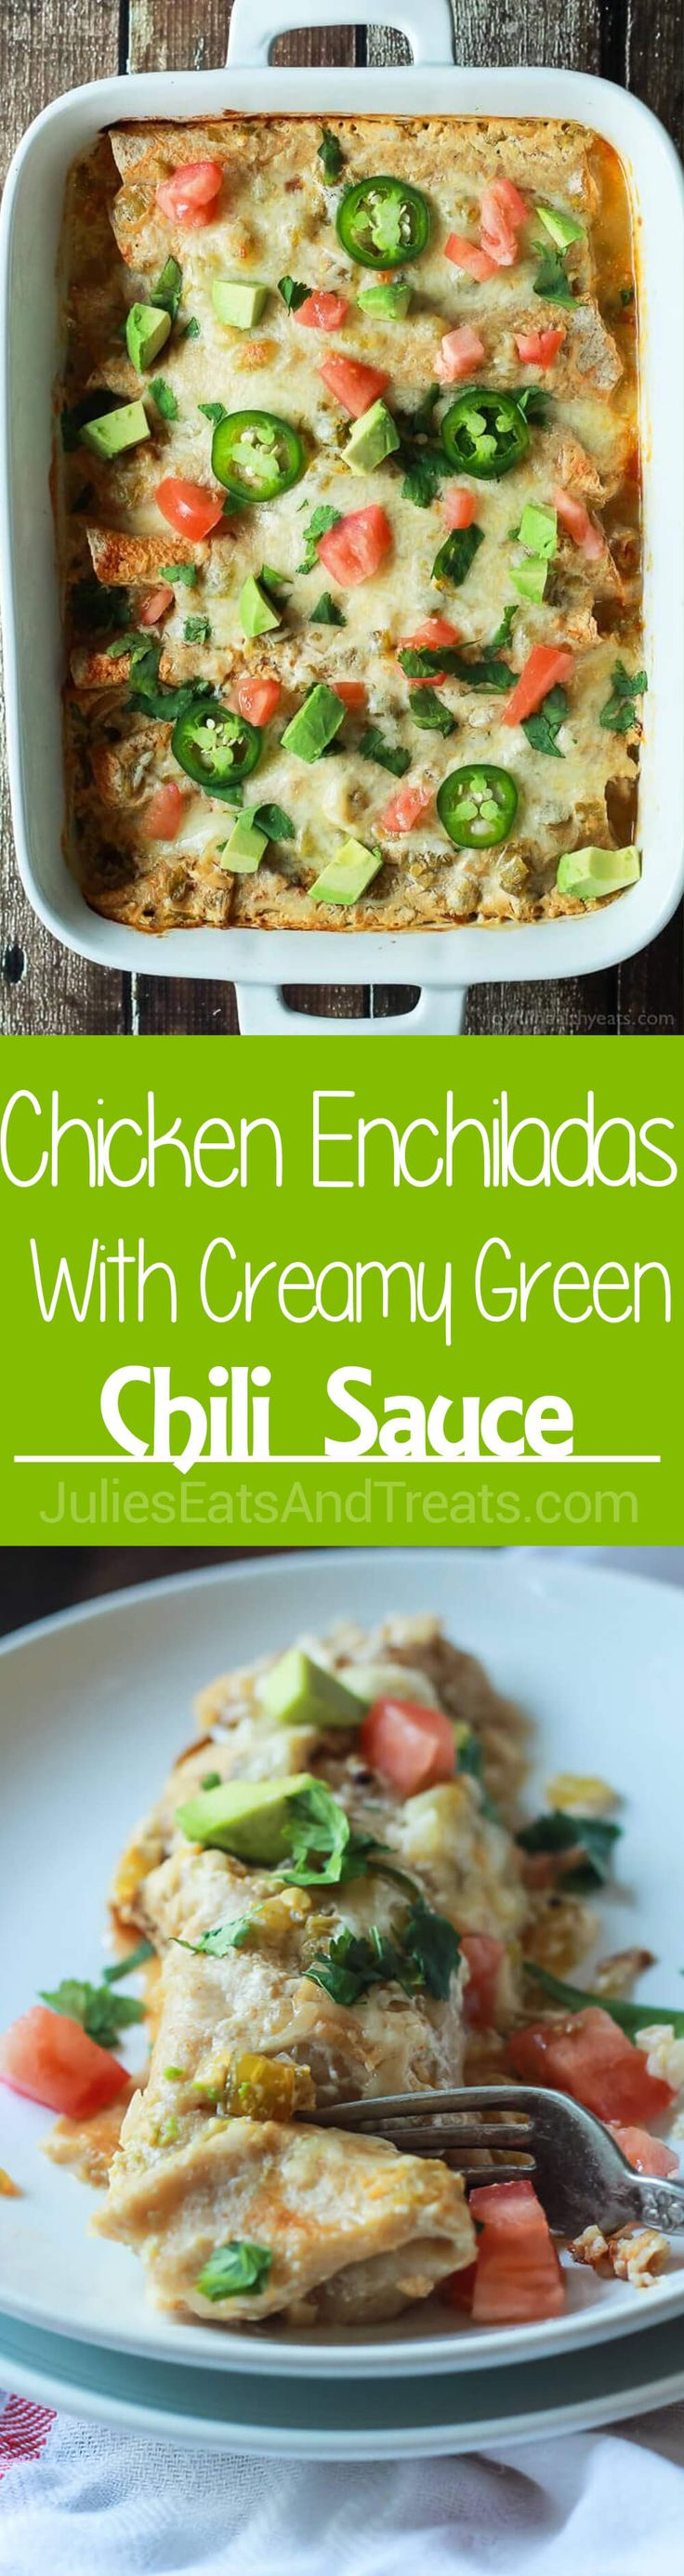 Chicken Enchiladas topped with a Creamy Green Chili Sauce made with Greek Yogurt and spicy green chilis! An easy weeknight meal that will beat going out to eat any day of the week!  via @julieseats